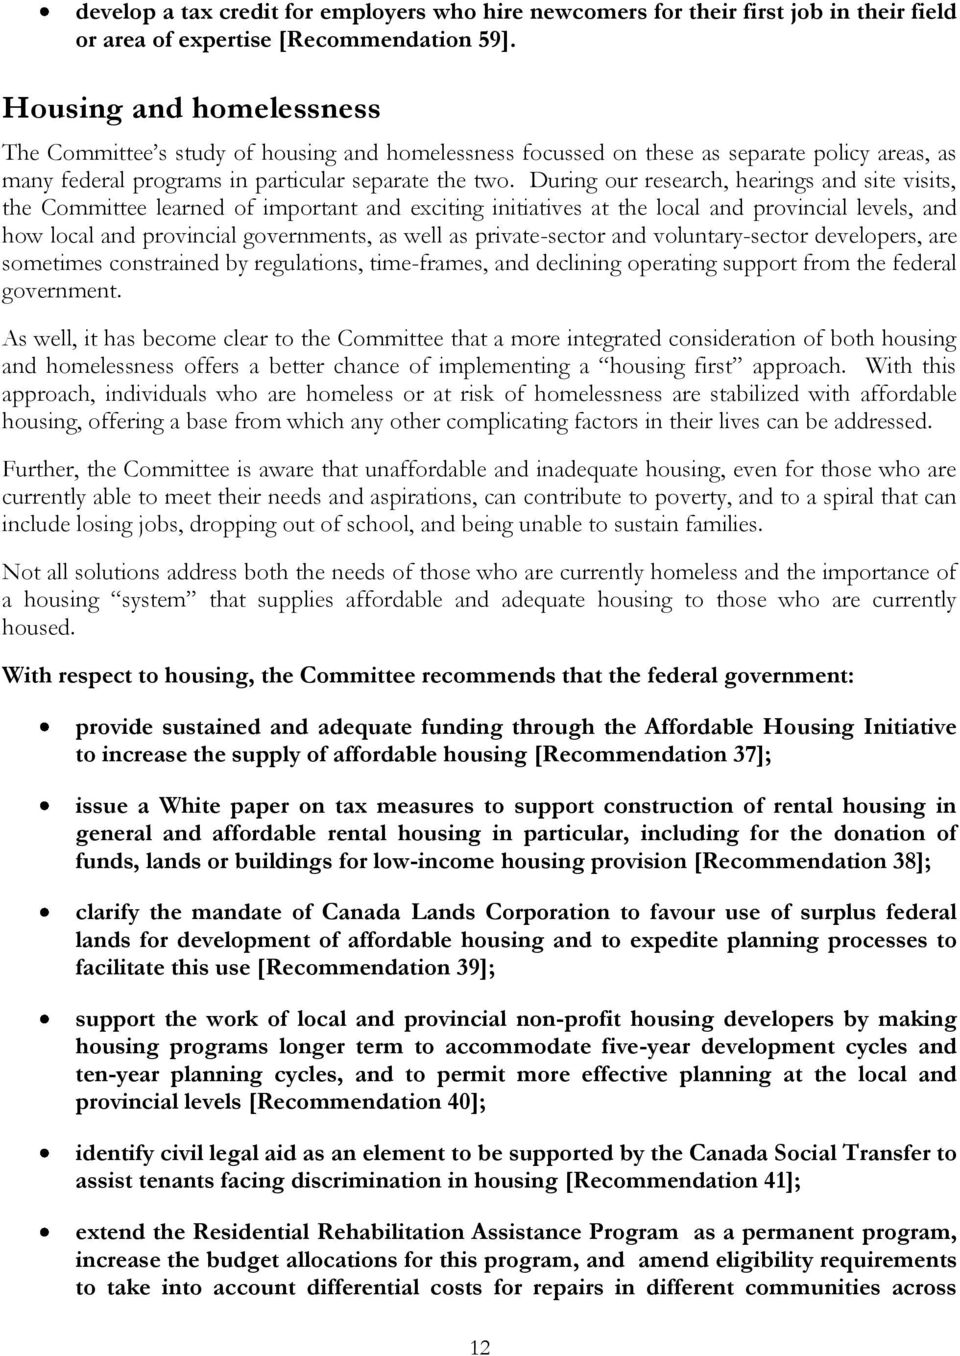 During our research, hearings and site visits, the Committee learned of important and exciting initiatives at the local and provincial levels, and how local and provincial governments, as well as